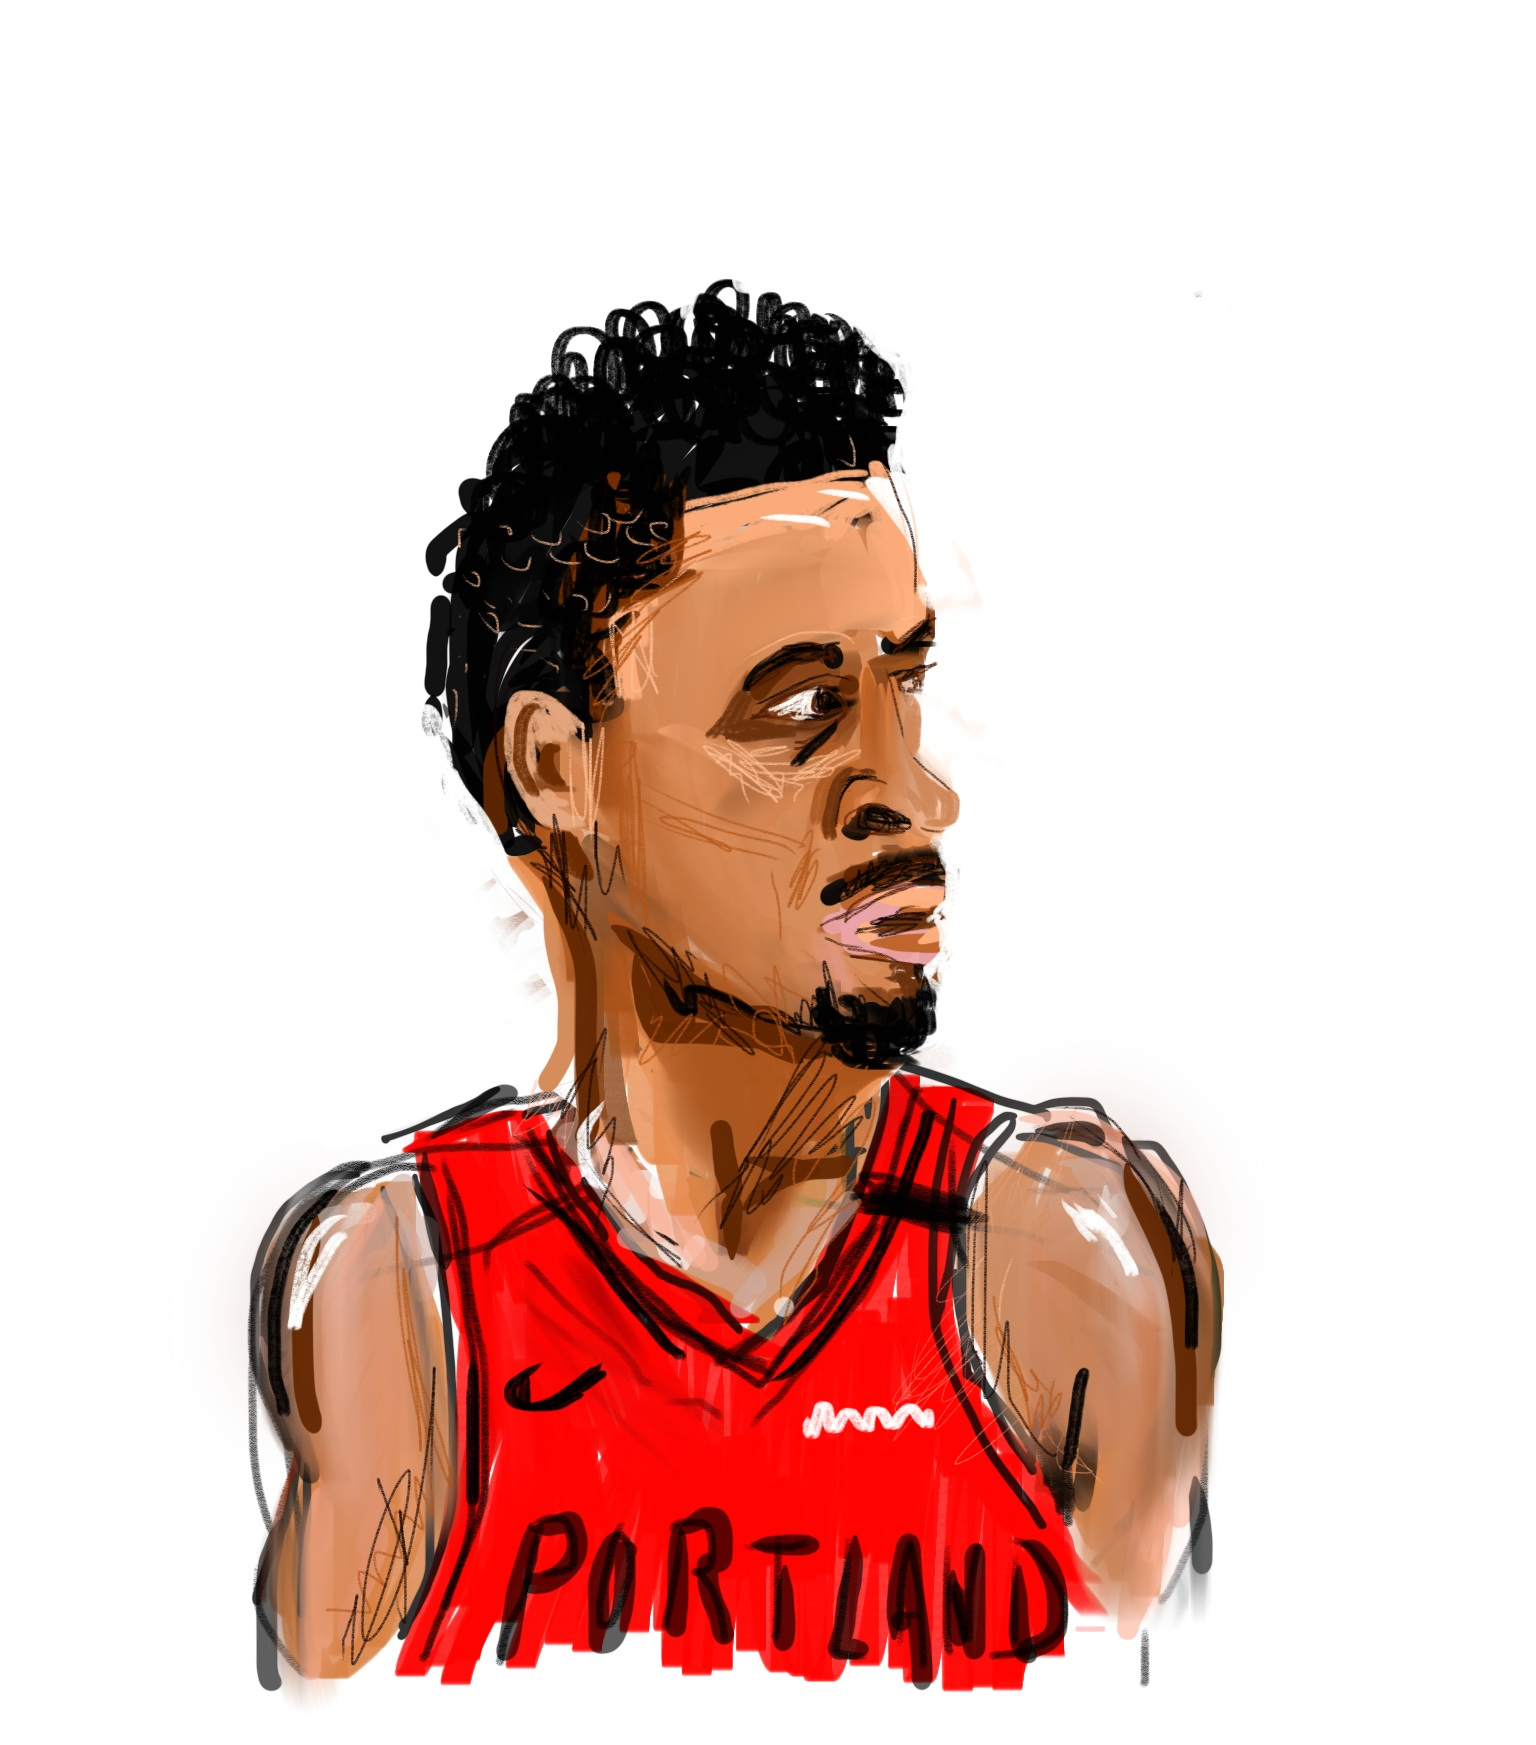 CJ McCollum by Oyl Miller